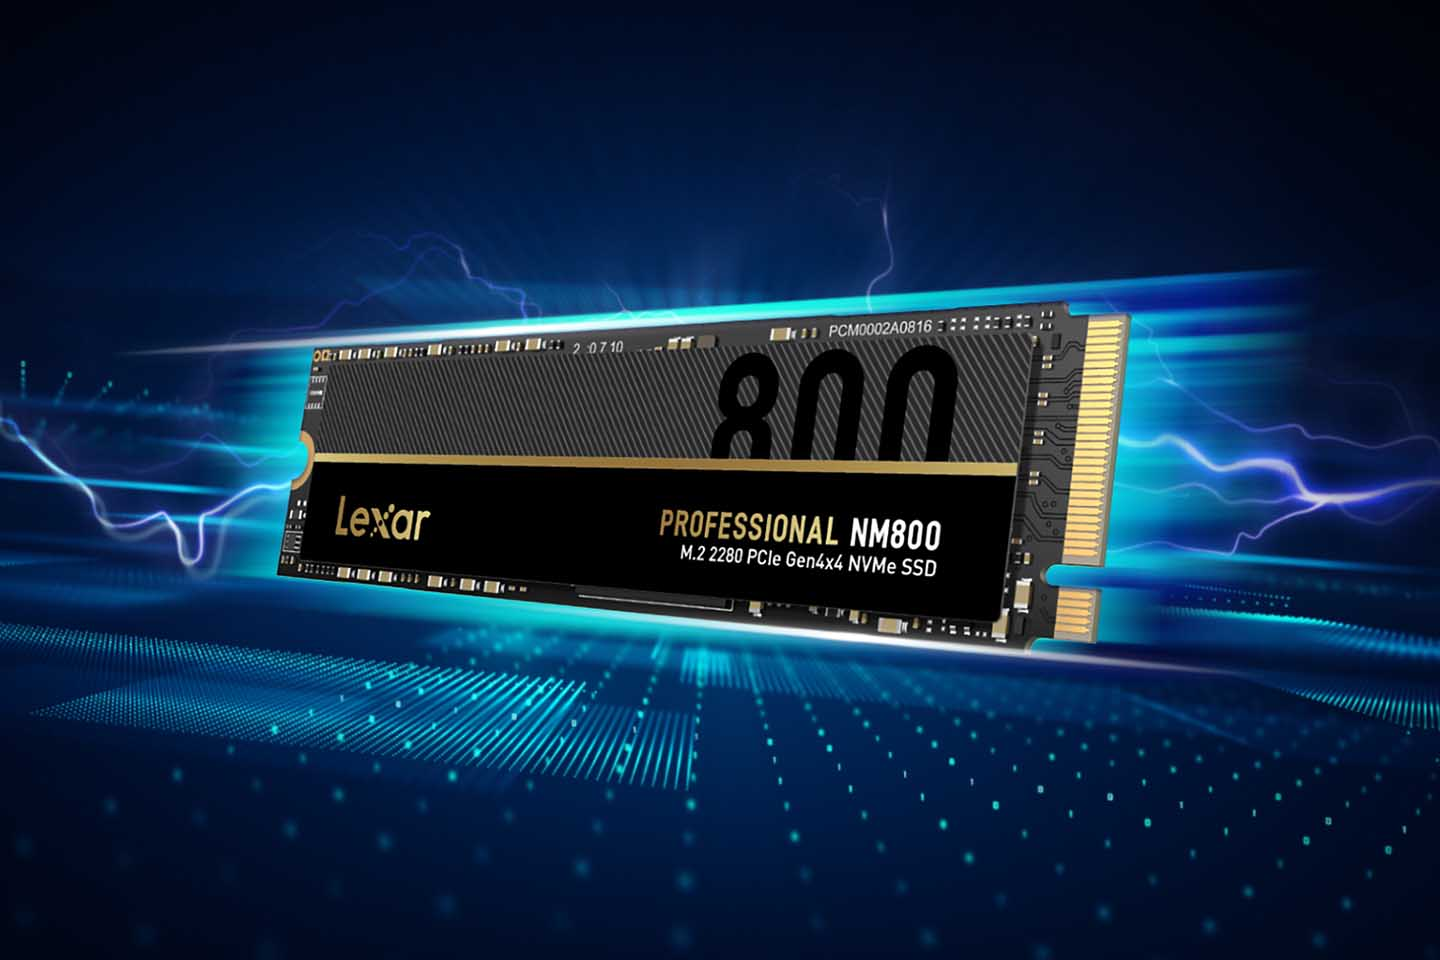 Lexar unveils Professional NM800 M.2 2280 PCIe Gen4x4 NVMe SSD with 7400MB/s read speed